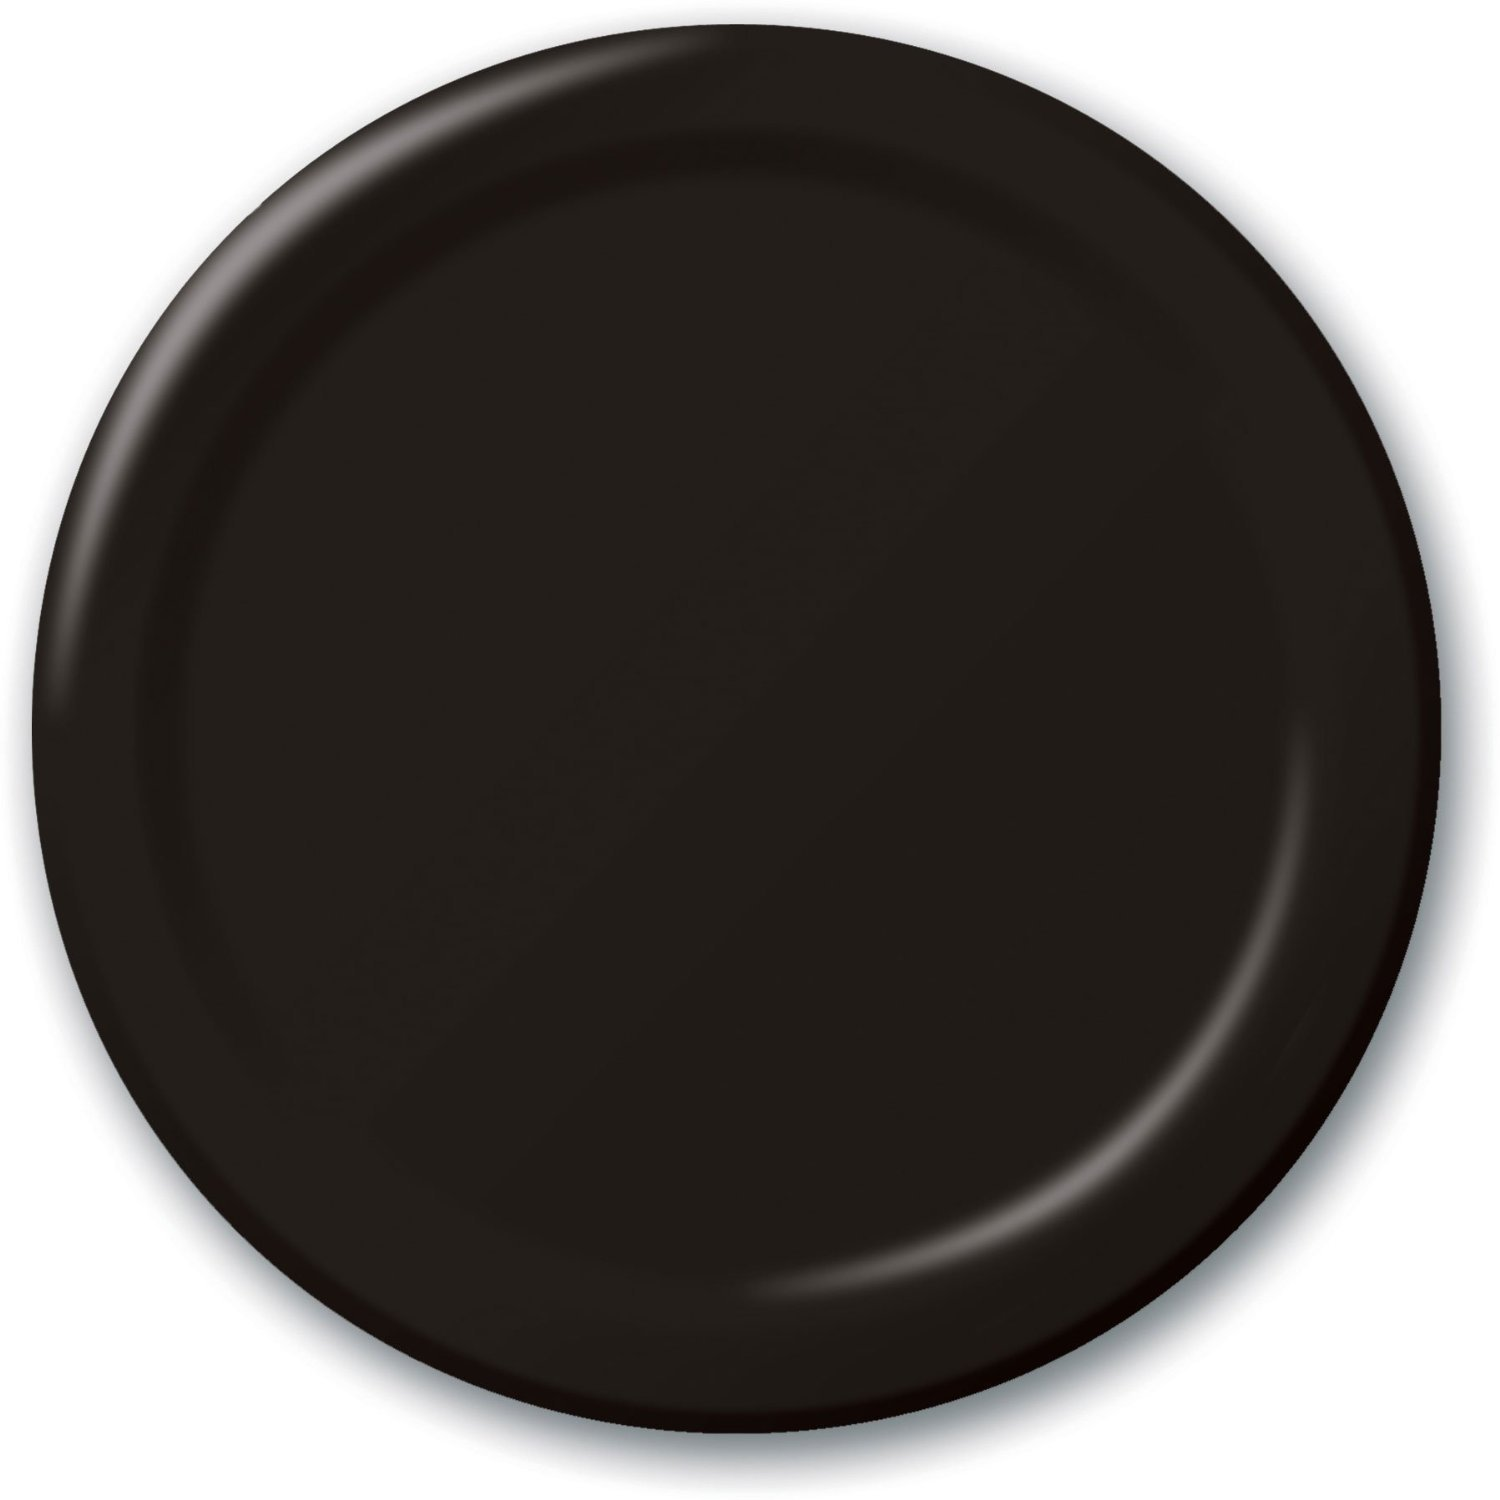 "24 Plates 10"" Paper Dinner Lunch Plates Wax Coated - Black"